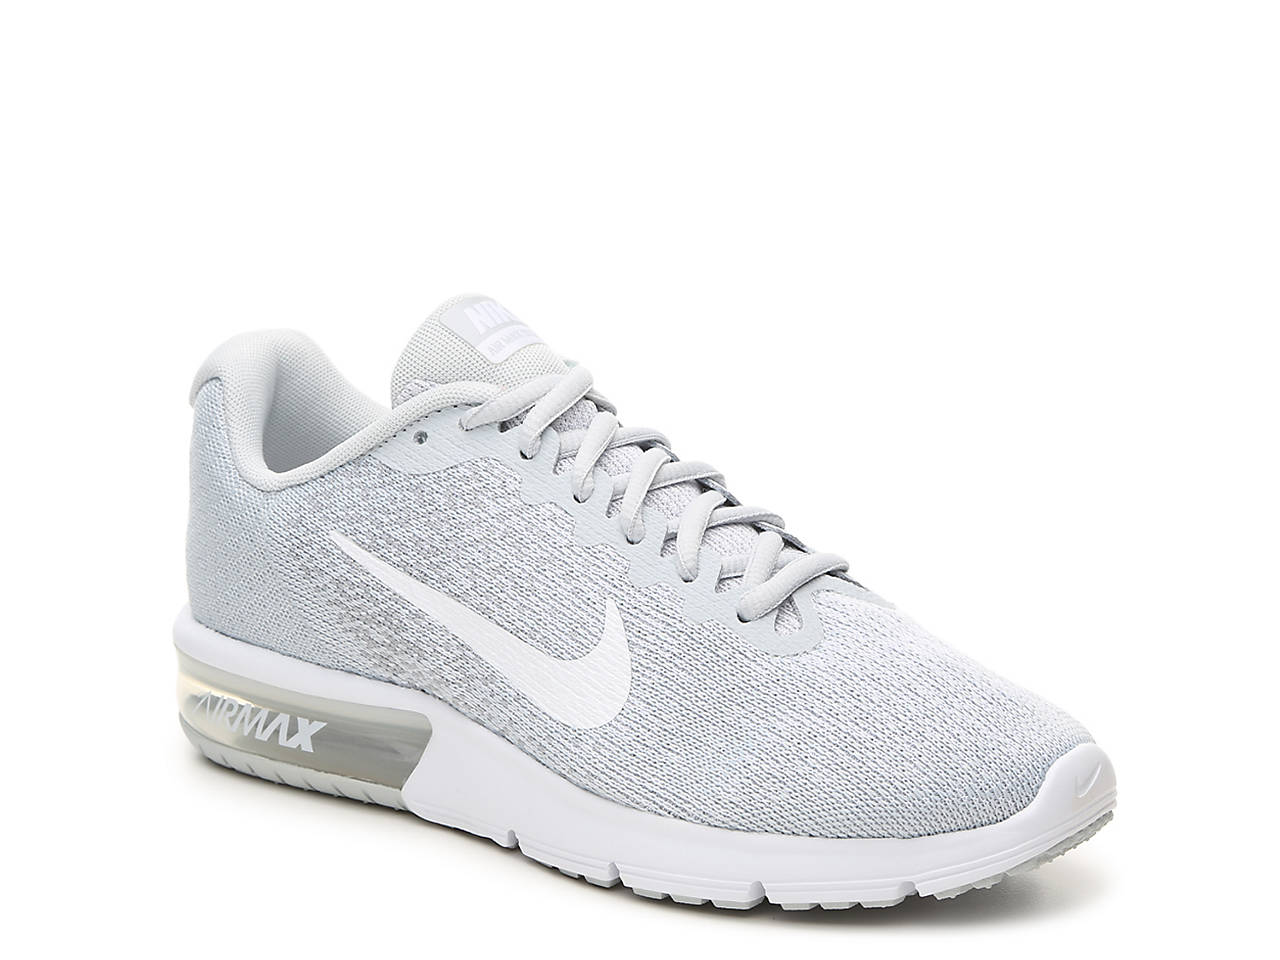 808a50eef4e Nike Nike Air Max Sequent 2 Running Shoe - Women s Women s Shoes